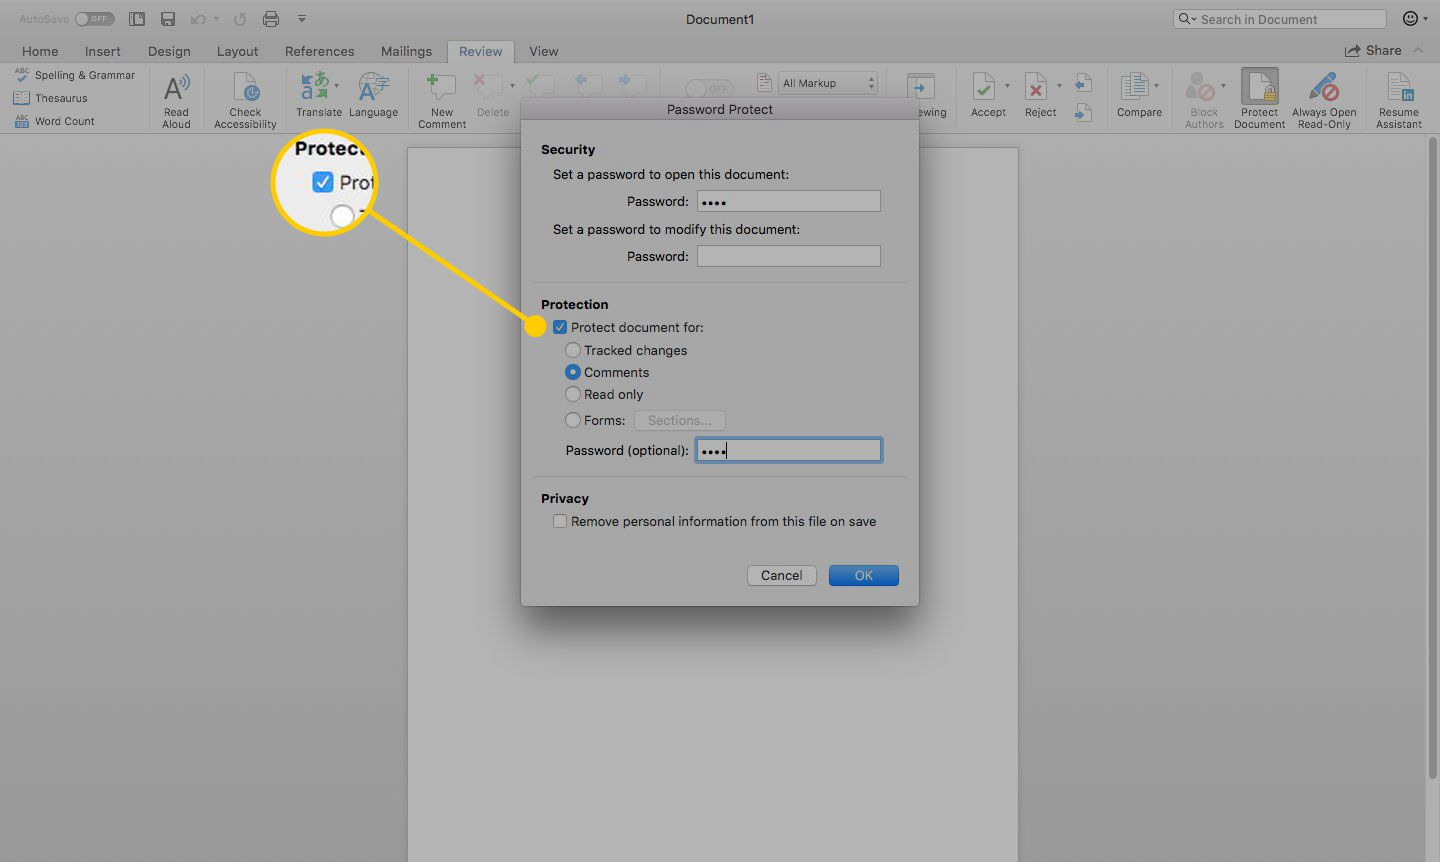 Password Protect window in Word with the Protect Document For check box highlighted